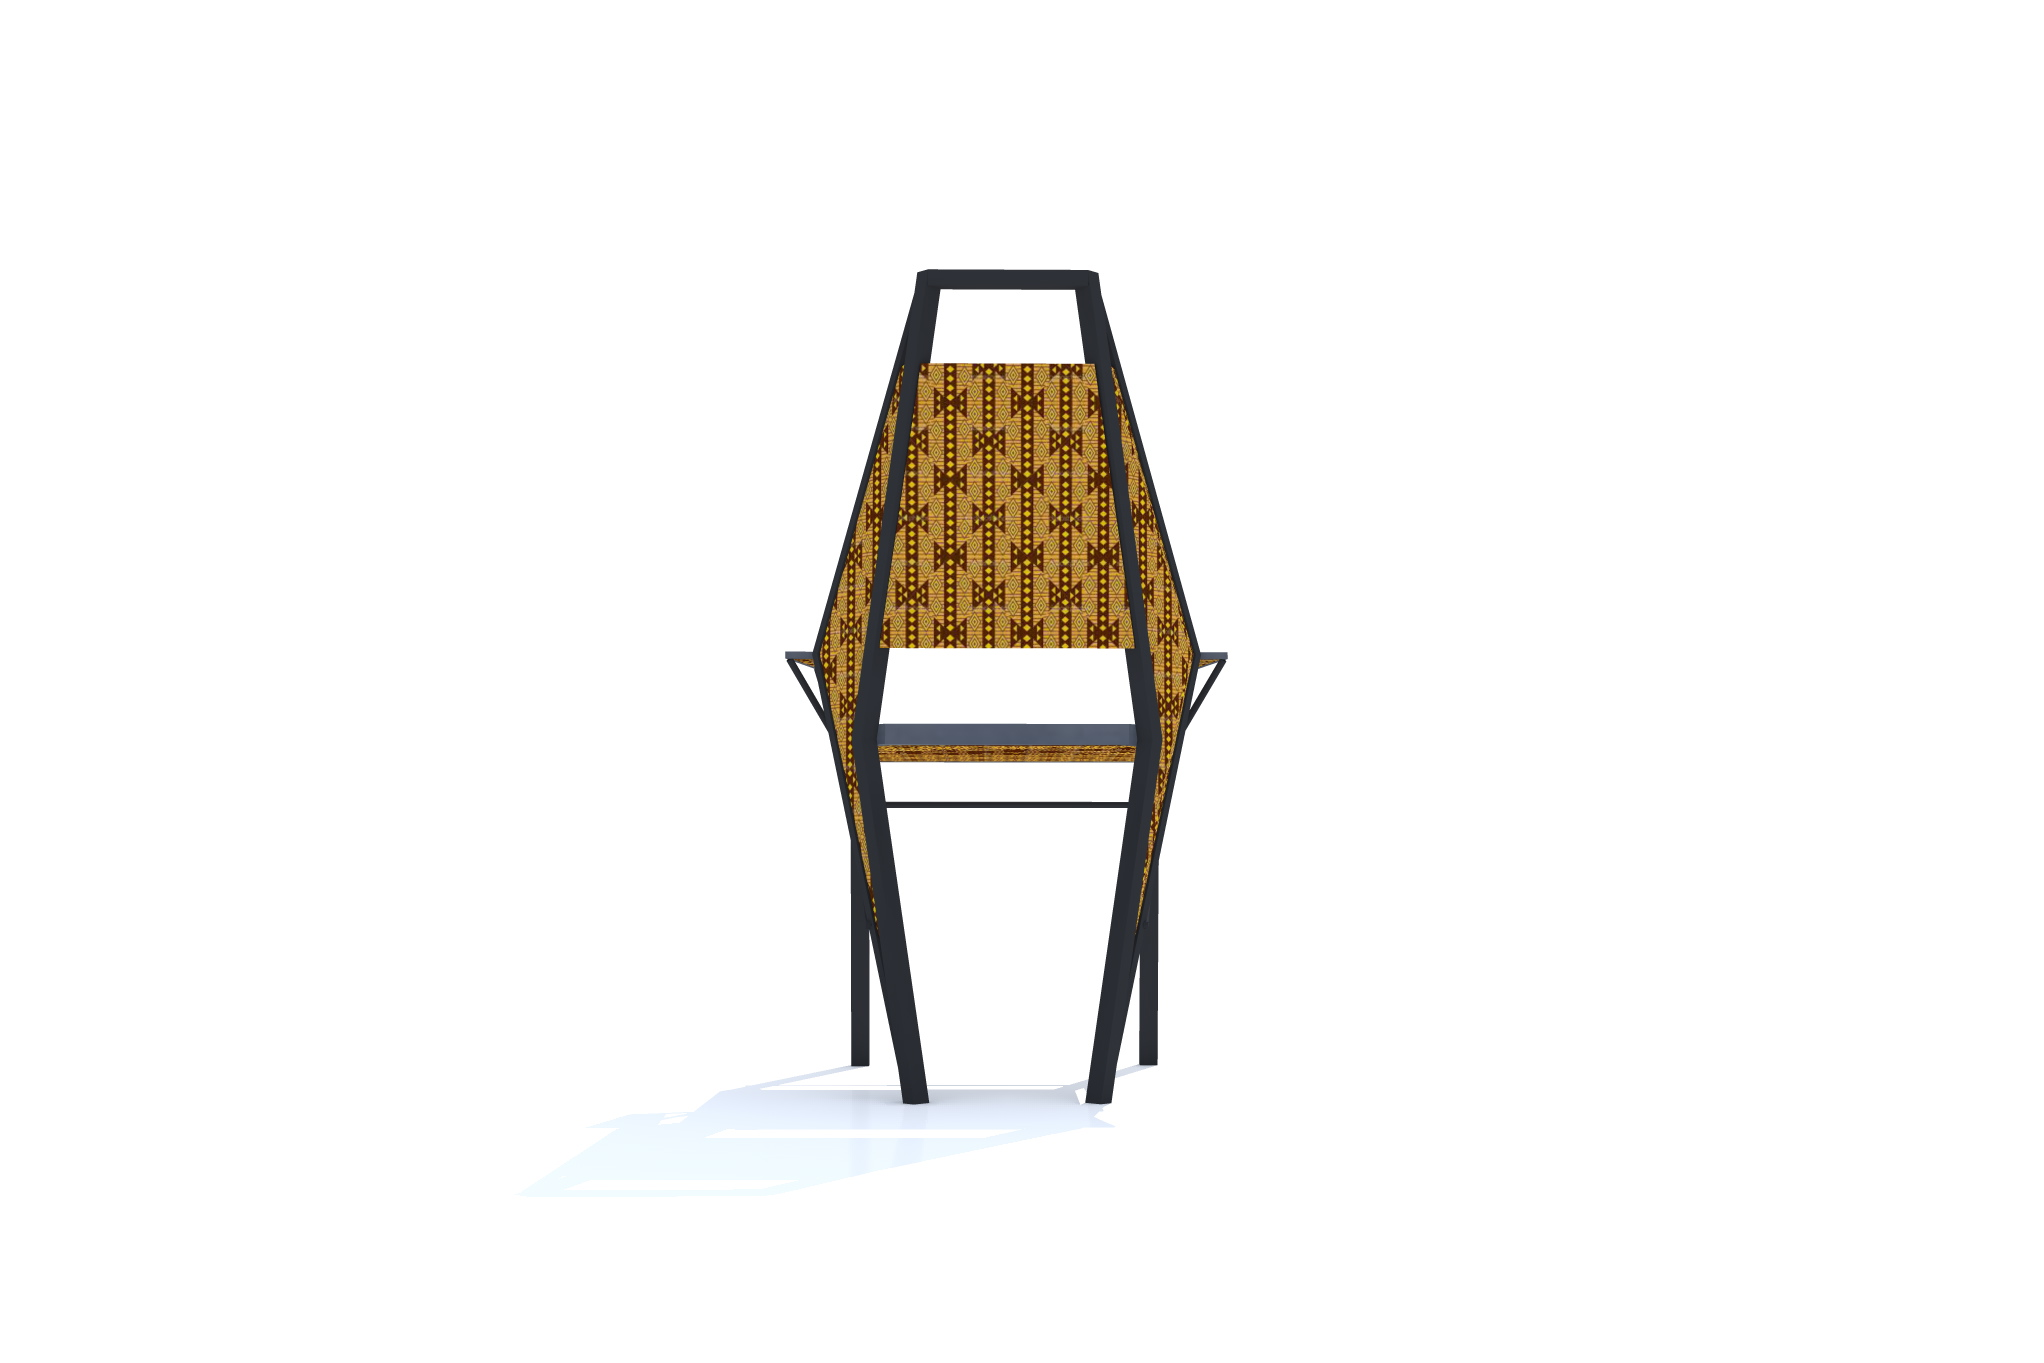 ADJII CHAIR AFRICAN FURNITURE DESIGN By Kwessi Albert At